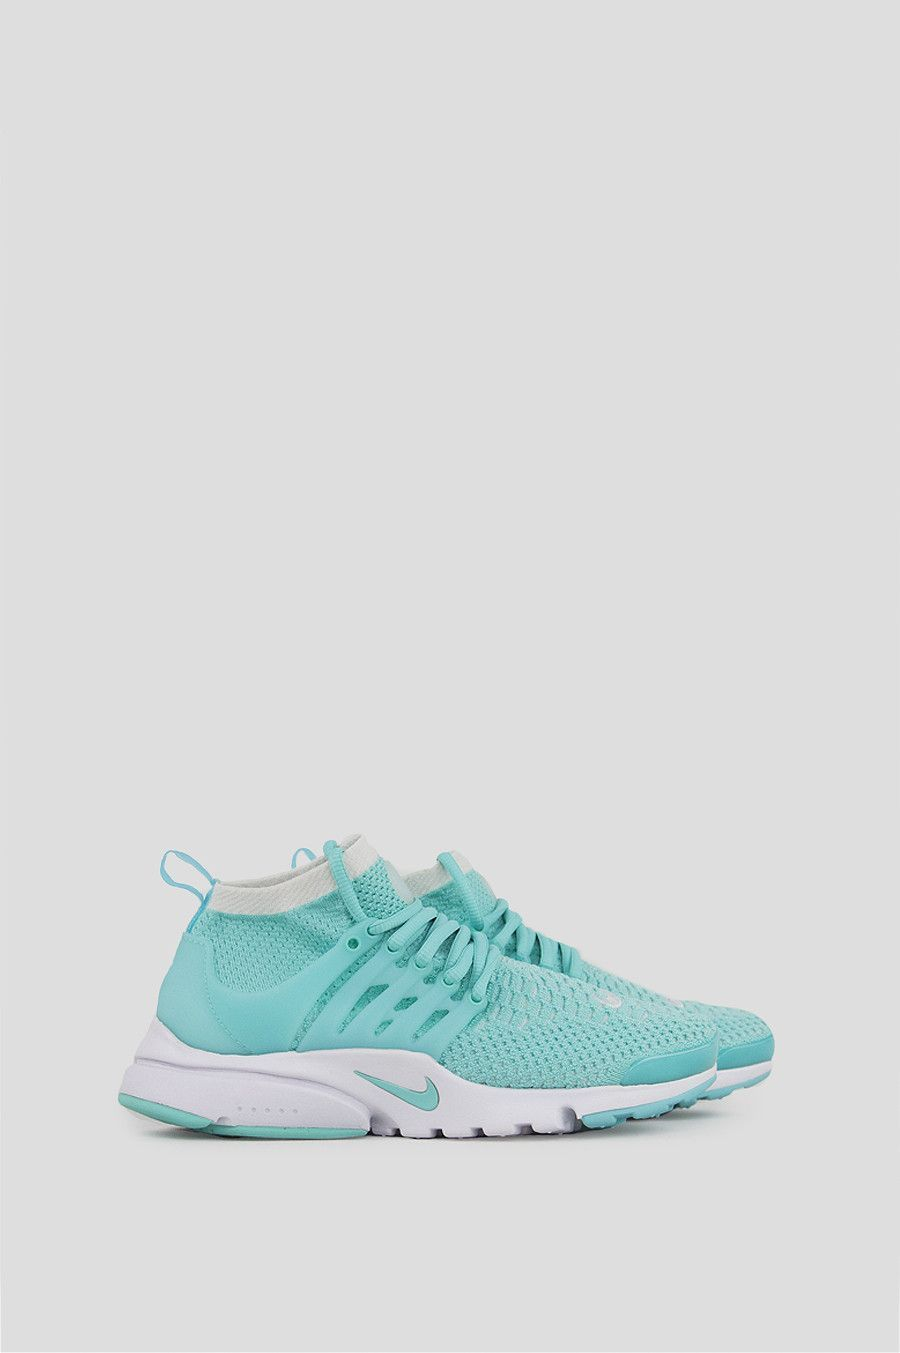 3495caccb1fd NIKE WOMENS AIR PRESTO FLYKNIT ULTRA HYPER TURQUOISE